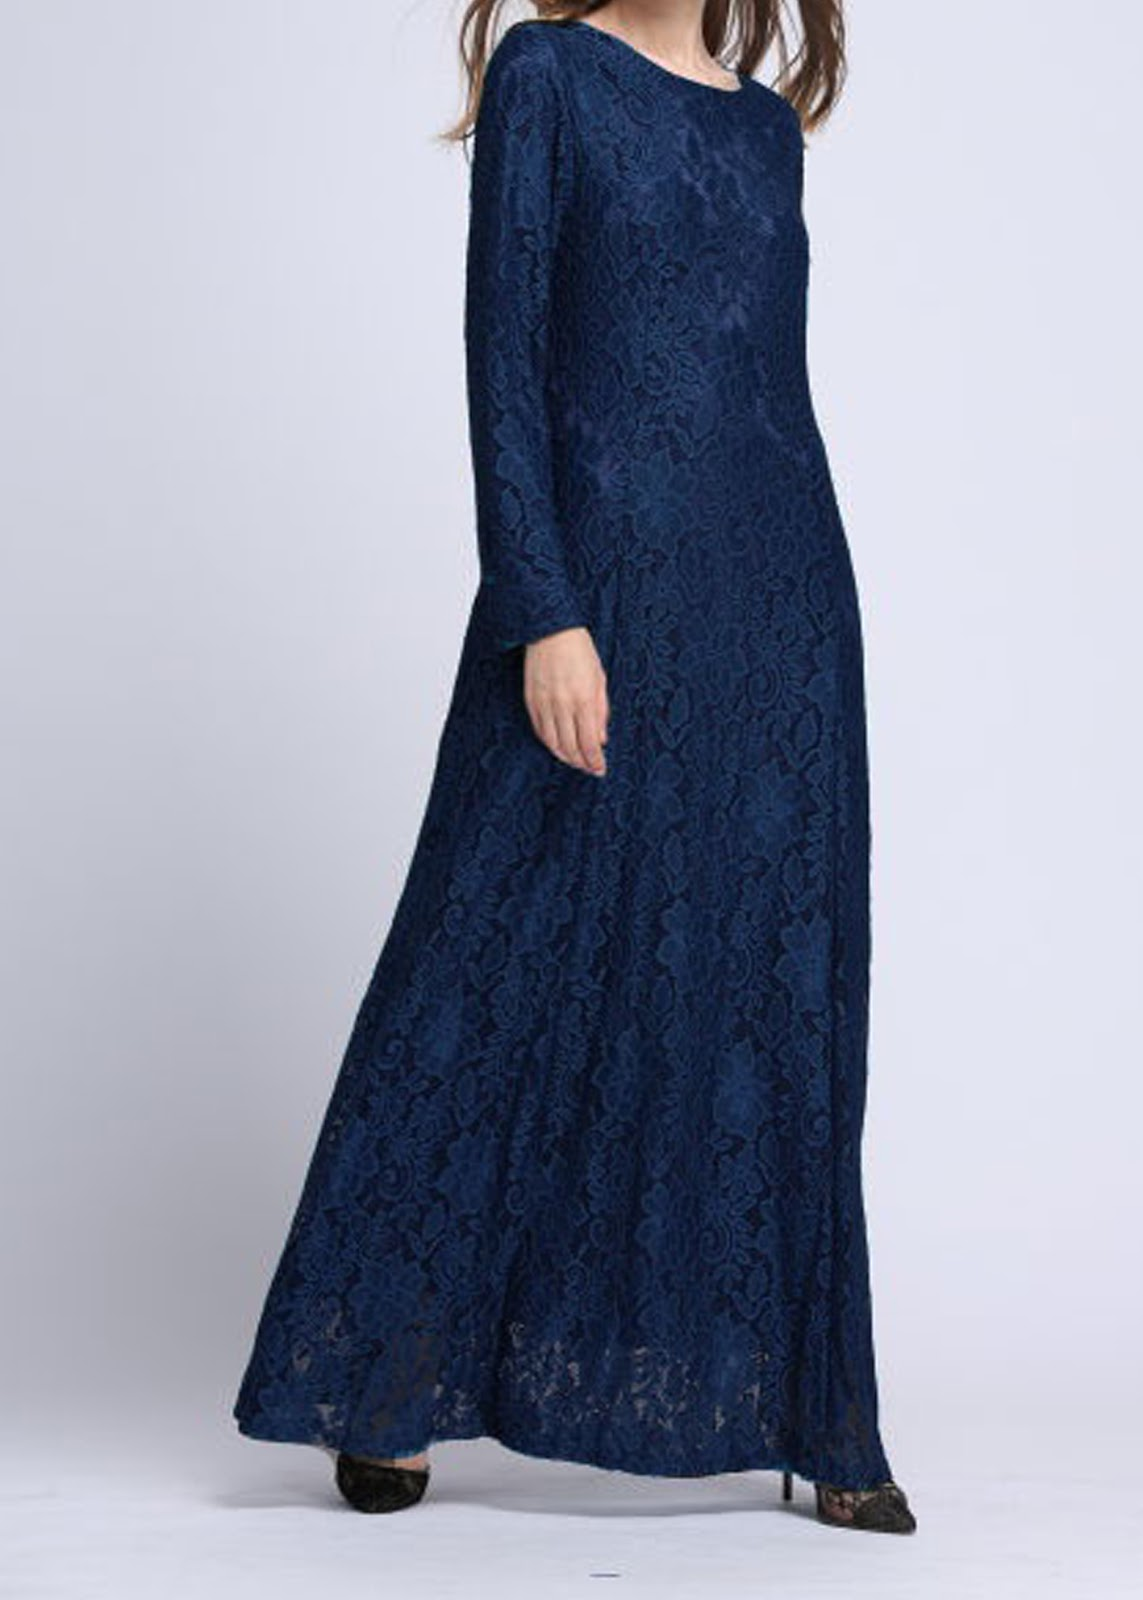 Galerry lace dress murah